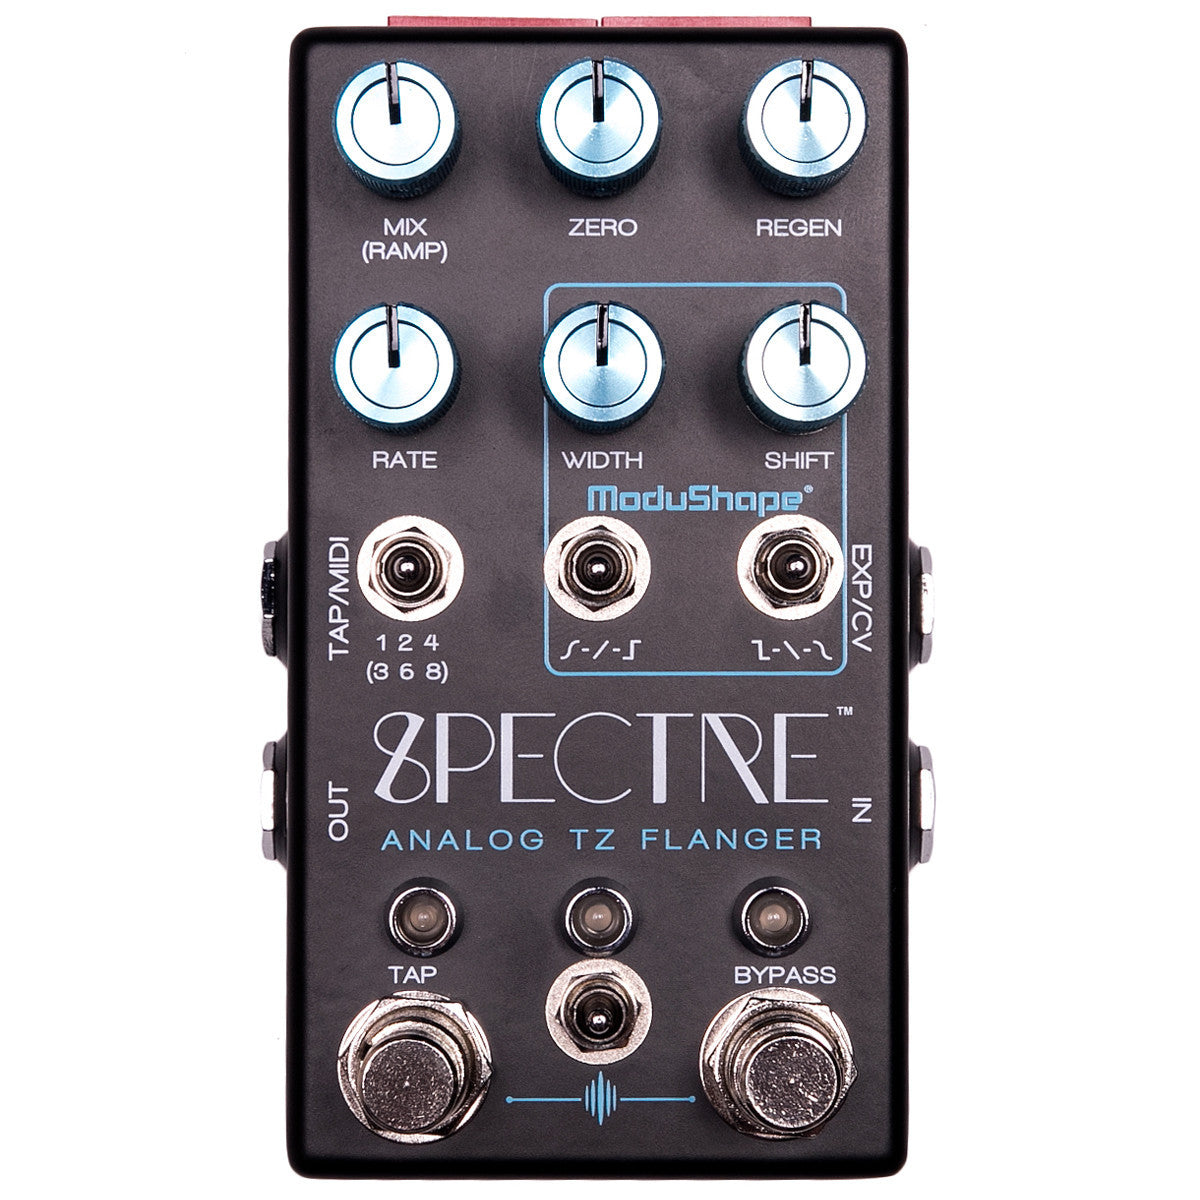 Chase Bliss Audio - Spectre - Analog TZ Flanger - Vintage Guitar Boutique